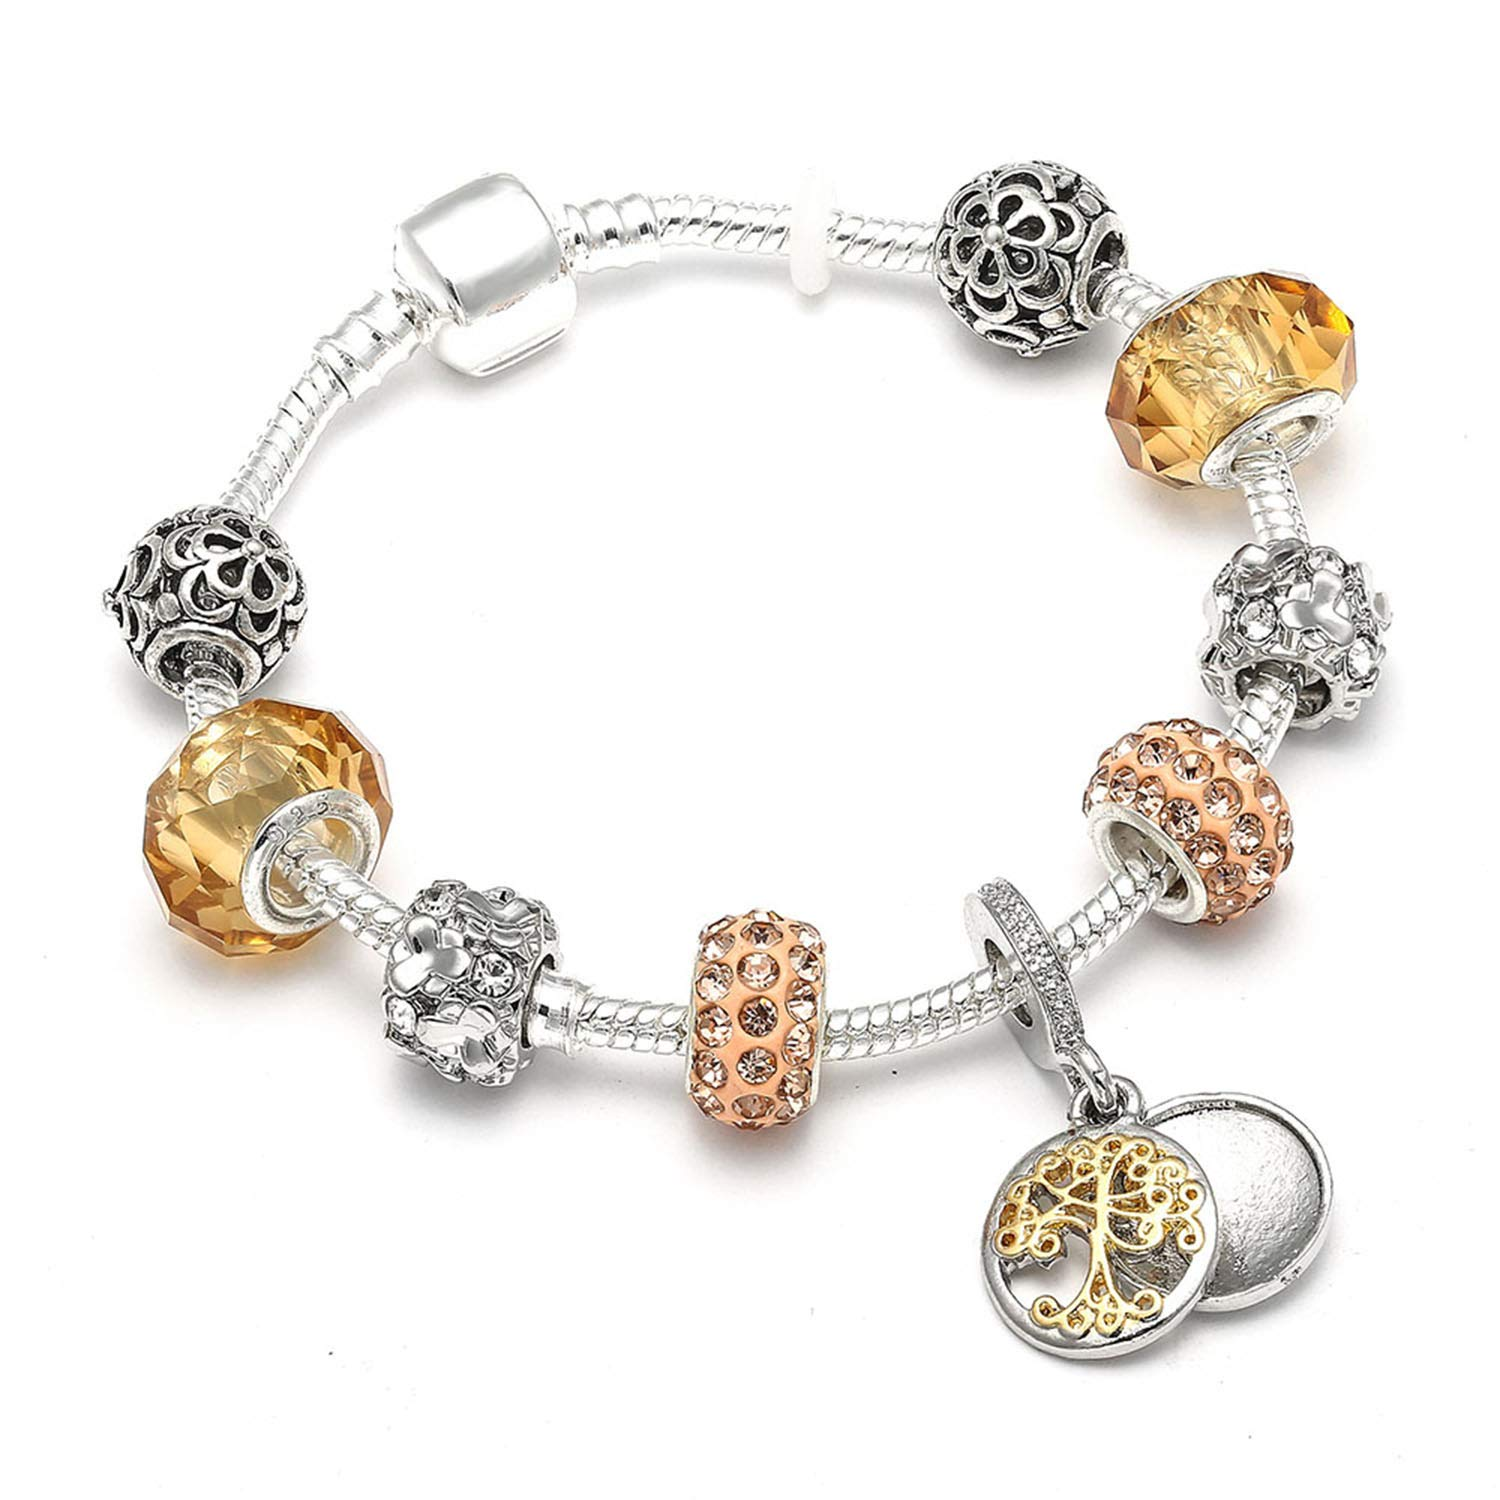 Vintage Silver Color Charm Bracelet with Tree of Life Pendant /& Gold Crystal BallBracelet Imitation Rhodium Plated 20cm